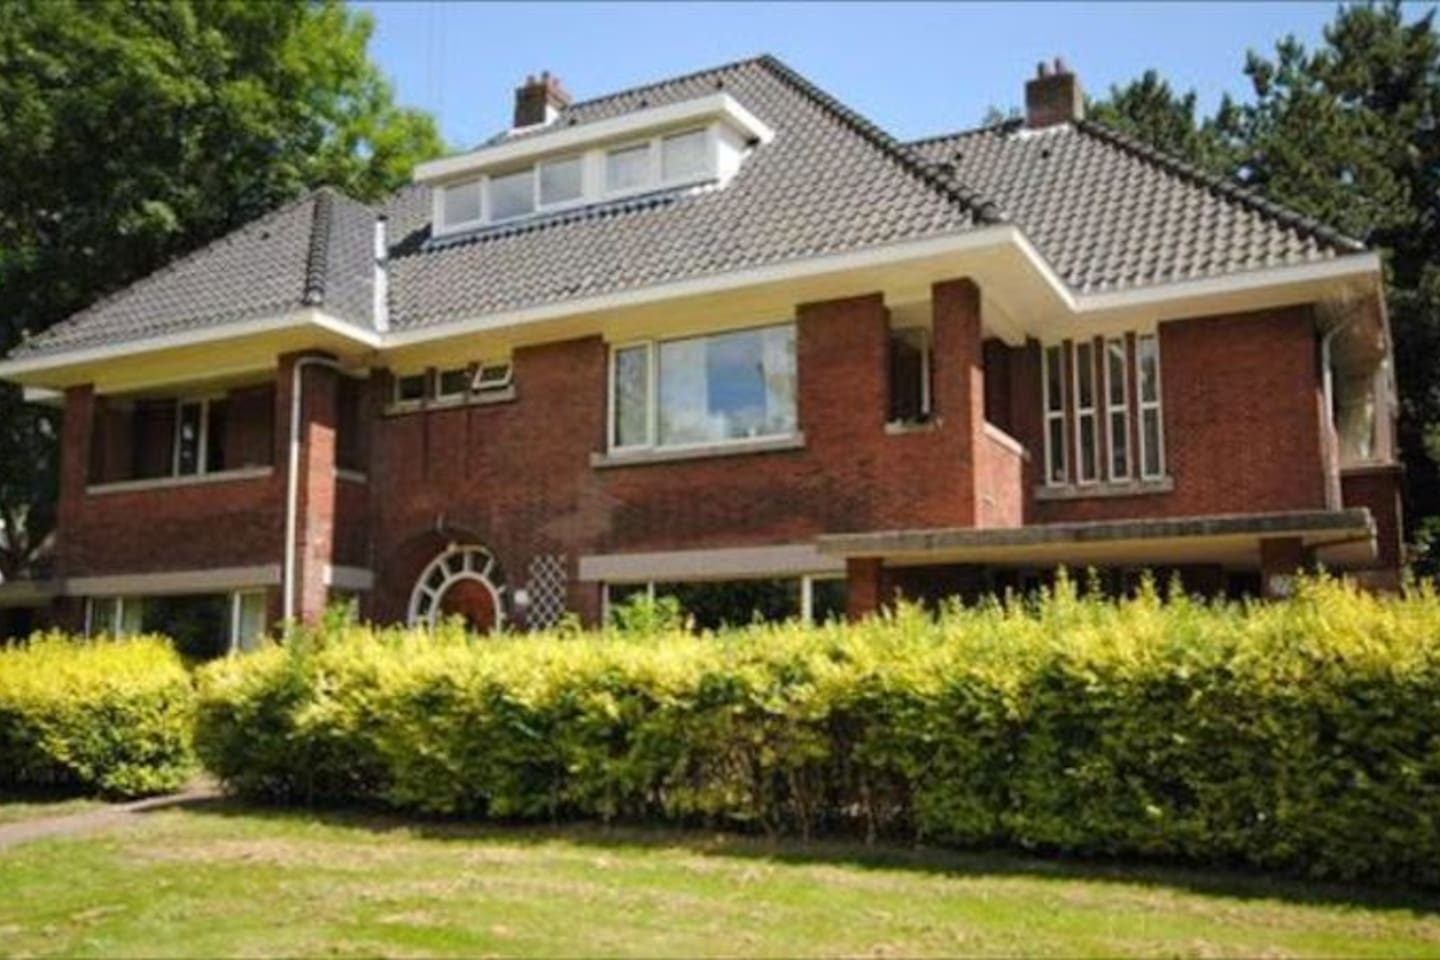 Spacious semi-detached family house (on airbnb, right house)